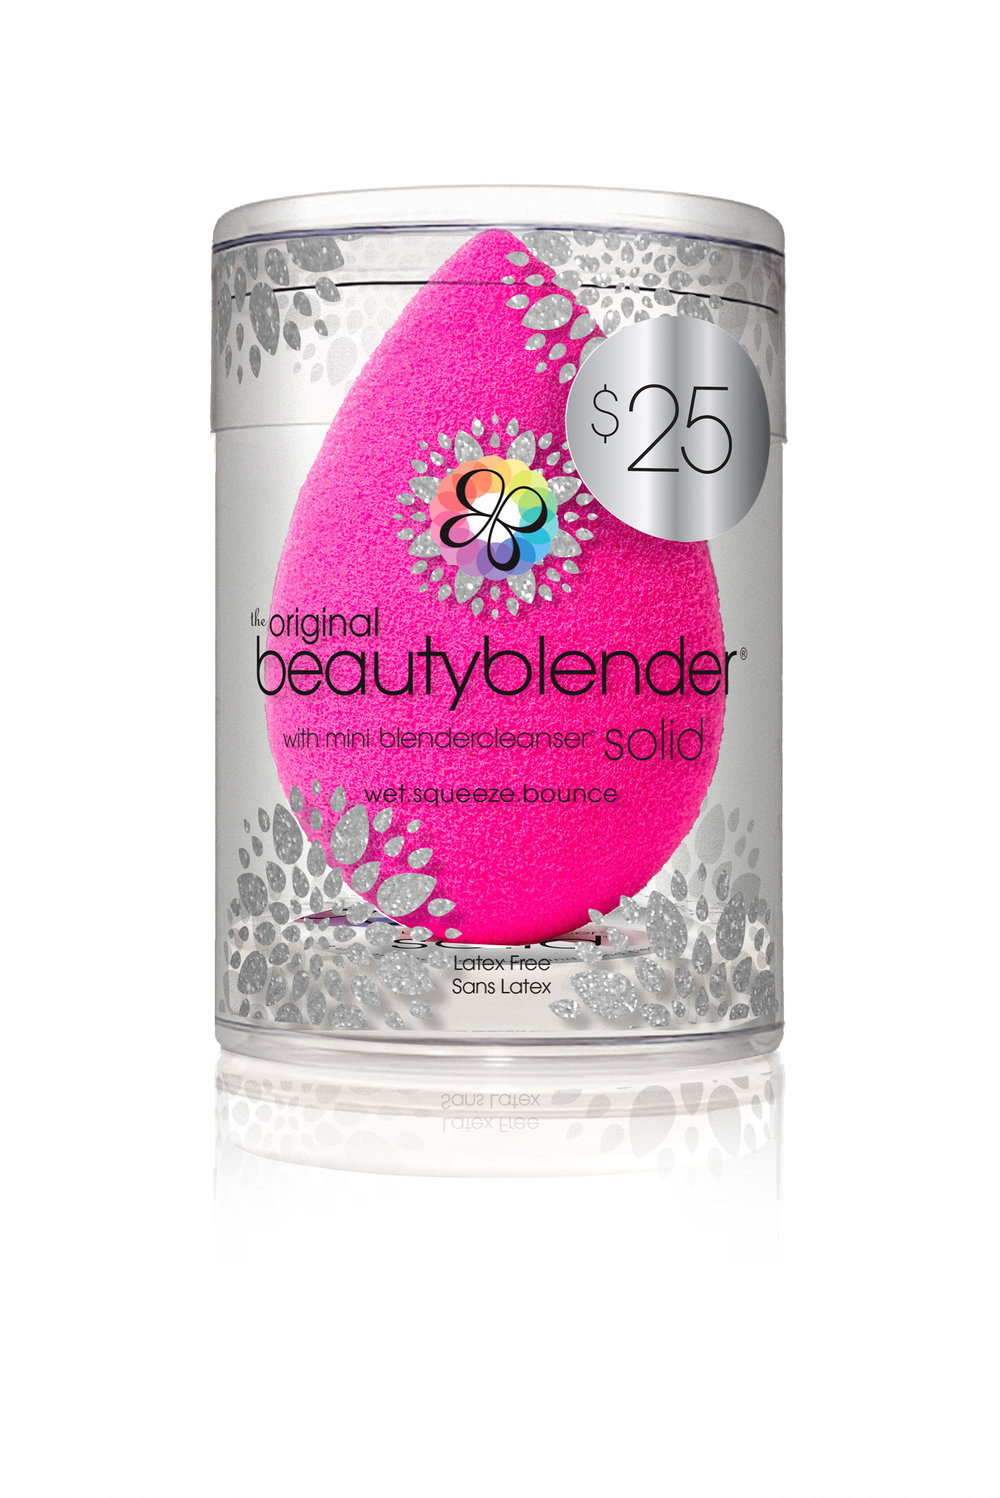 beautyblender-stocking-stuffer